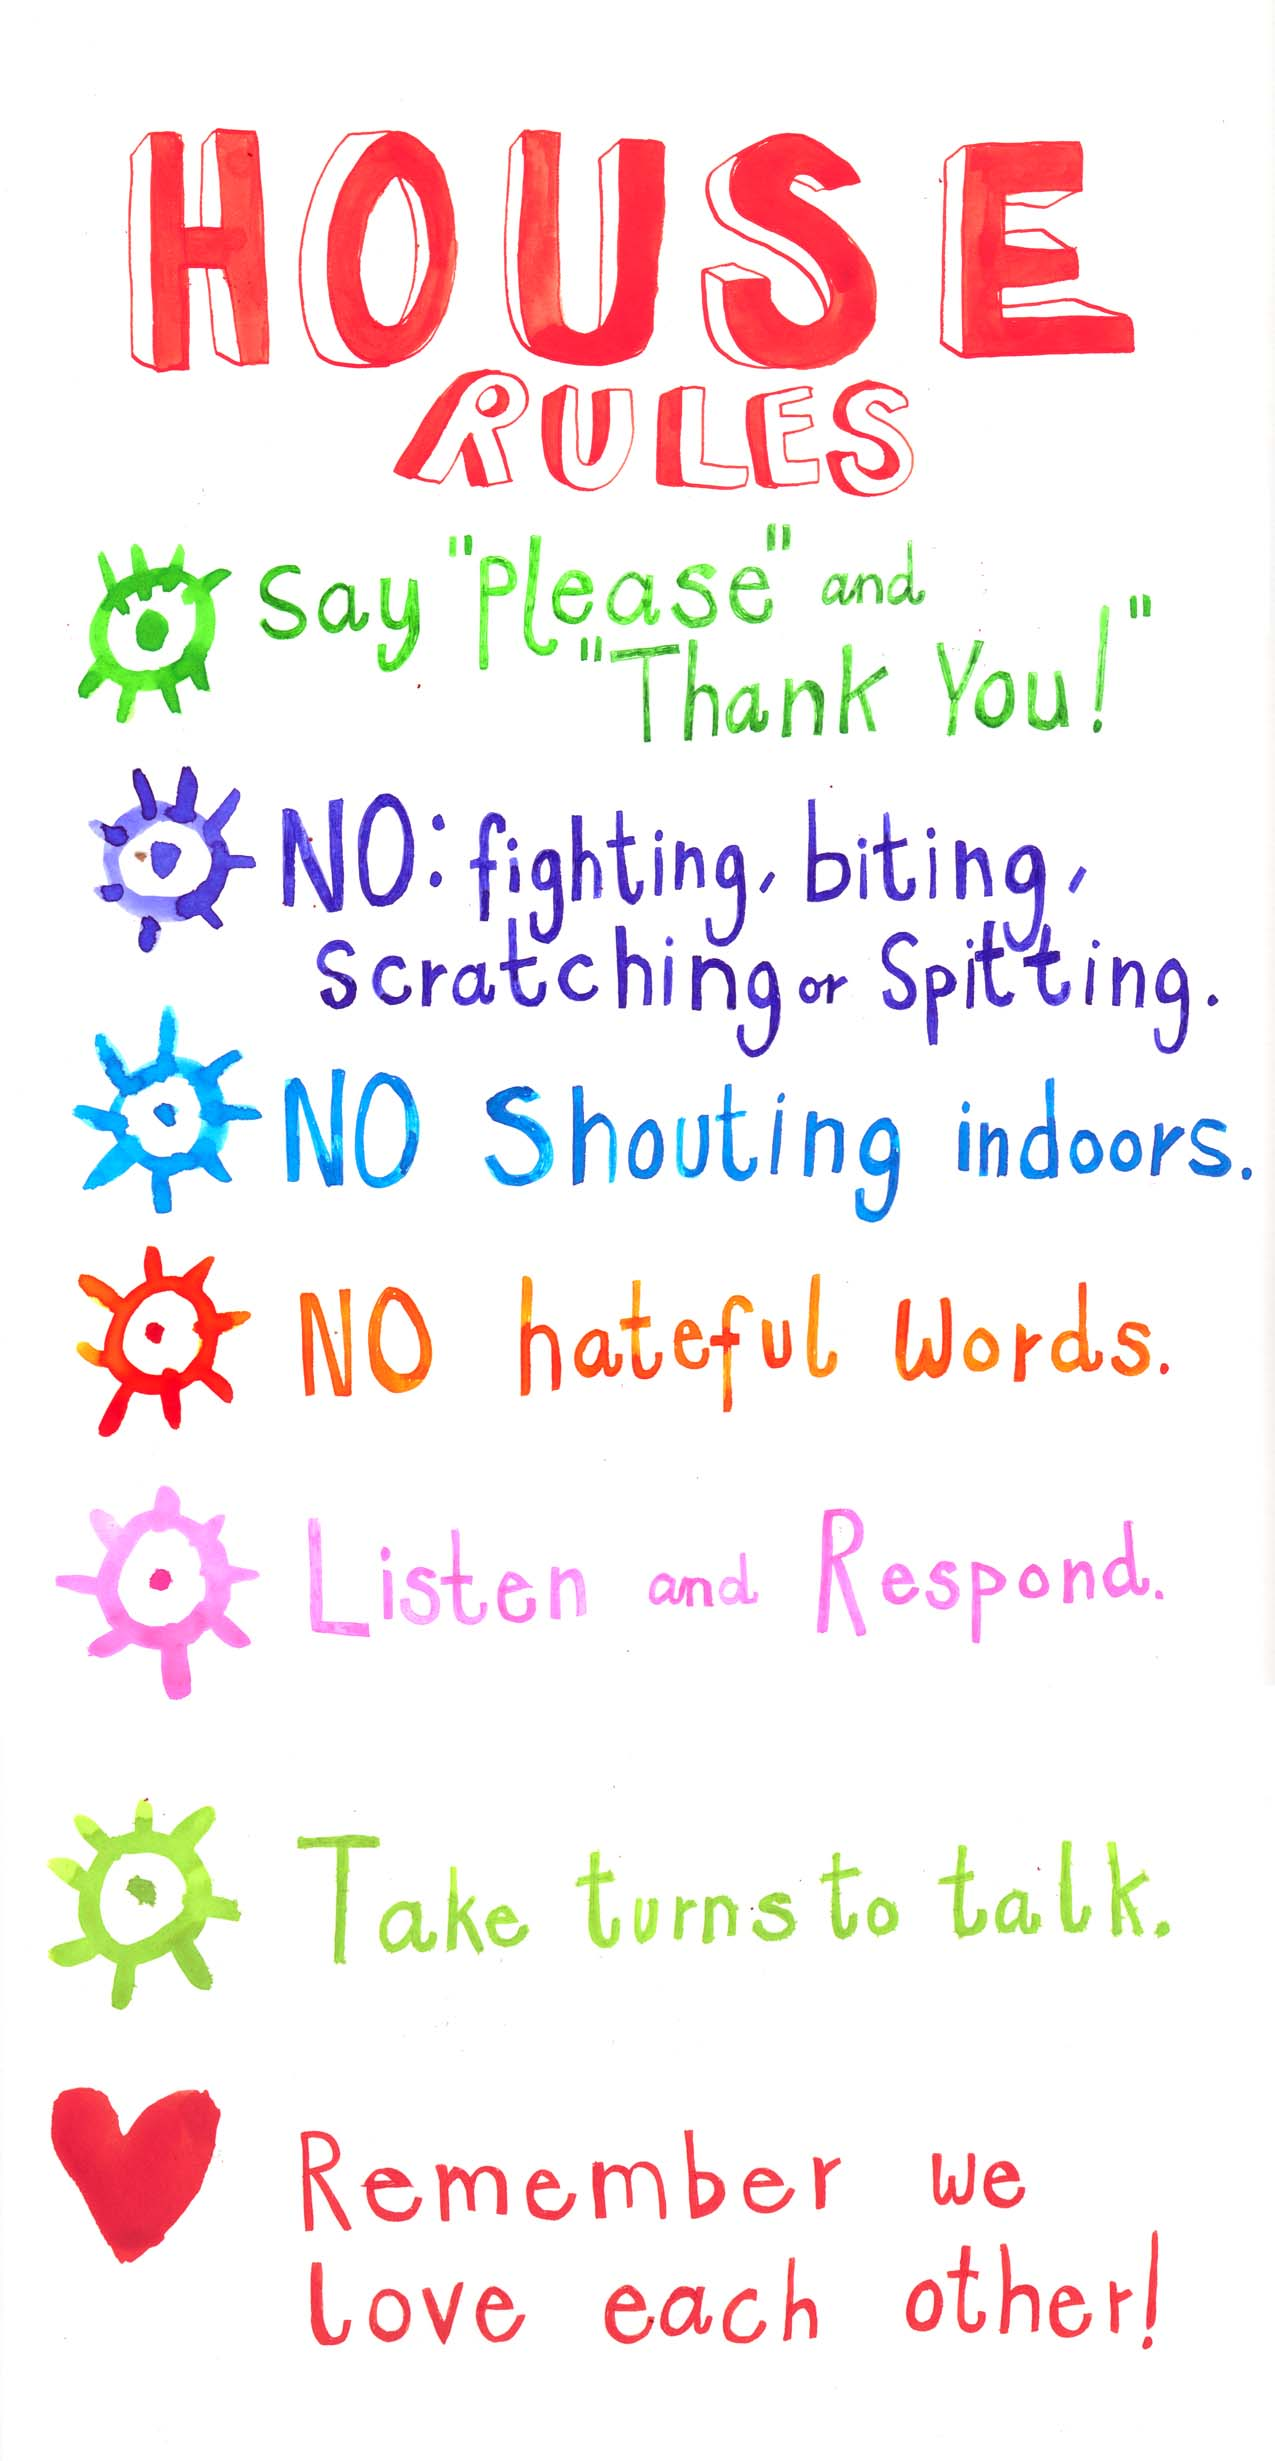 house rules chart template - house rules rebecca bradley illustration